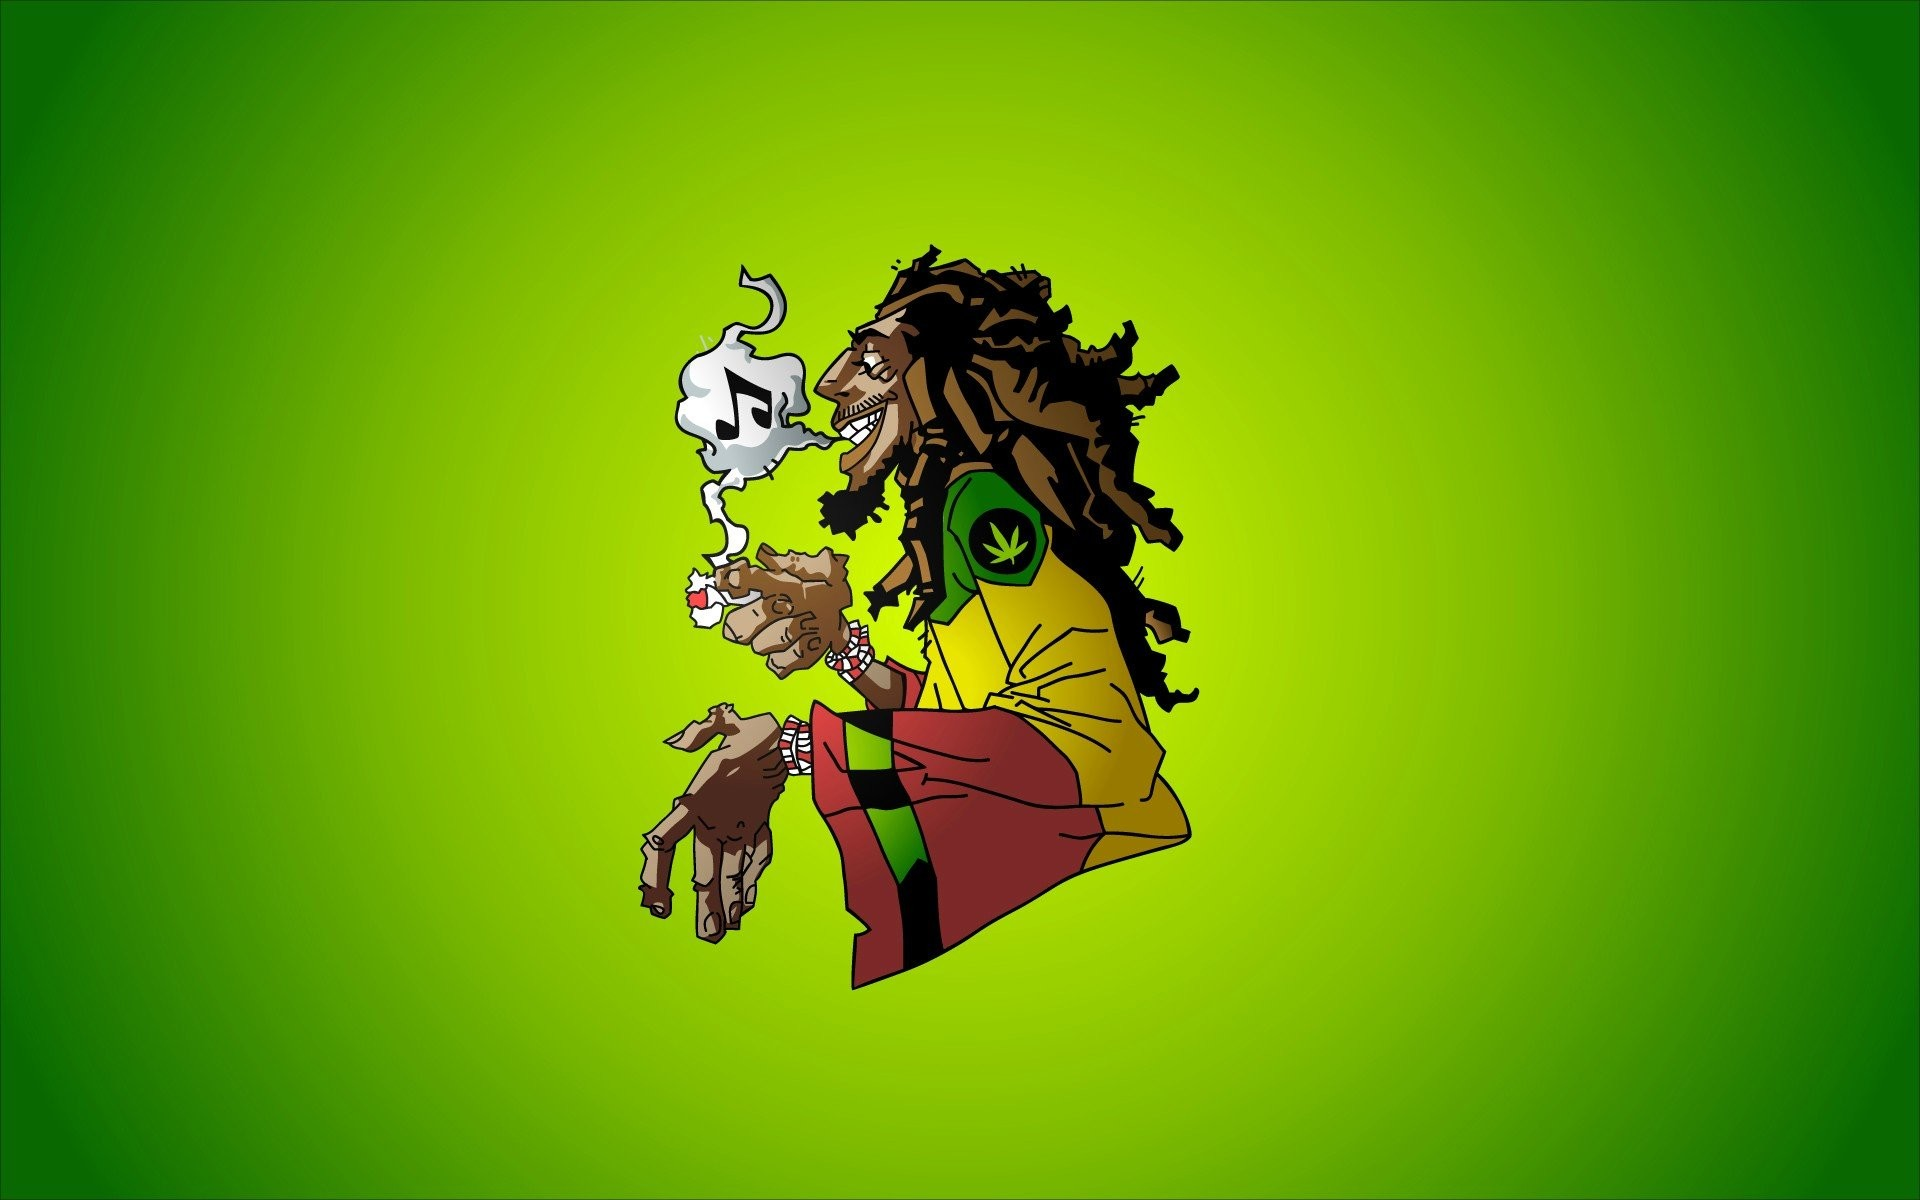 2096x3300 Bob Marley Wallpaper Rasta Famous Singer Jamaica Popular Reggae One Love No Woman Cry Widescreen Amazing